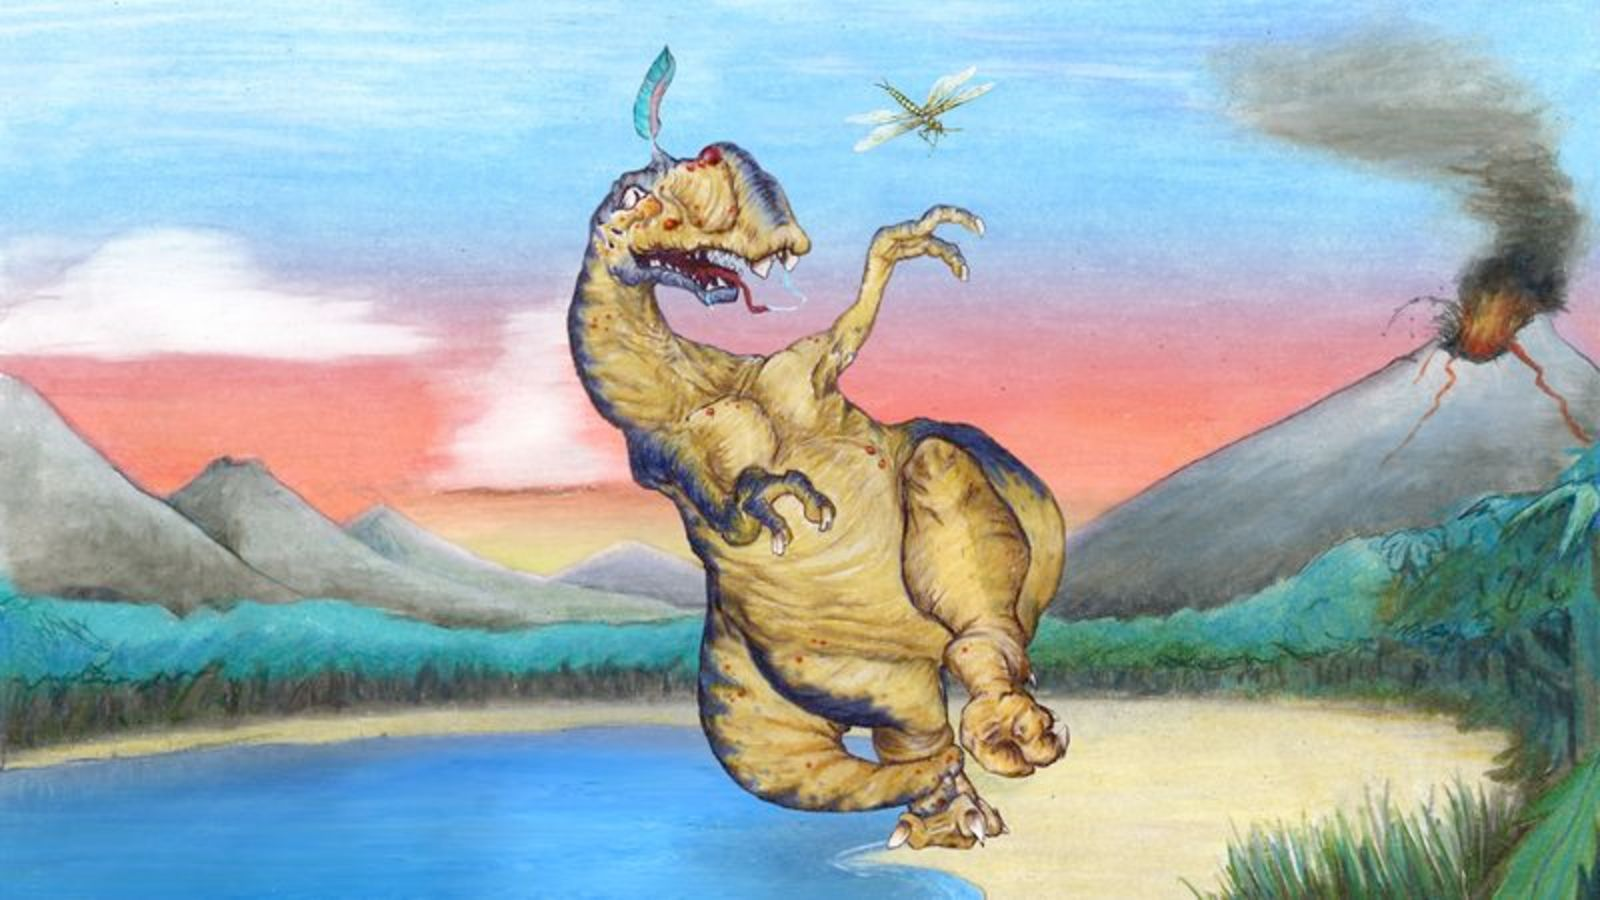 Fossilized Evidence Reveals Spazosaurus Was Largest Doofus To Ever Roam Earth https://t.co/etReQTHbdX https://t.co/3Mc6dHvScw